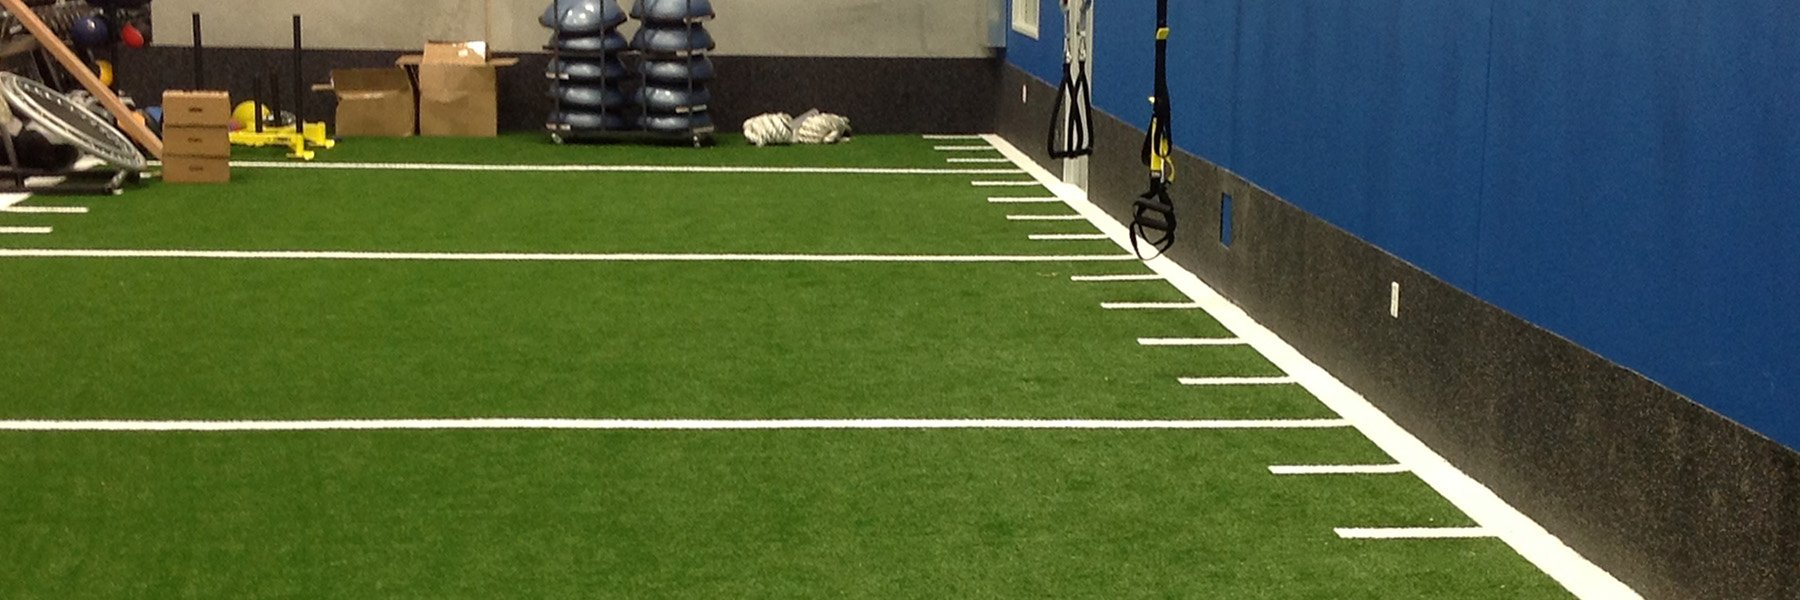 Non-Infilled Indoor Gym Turf